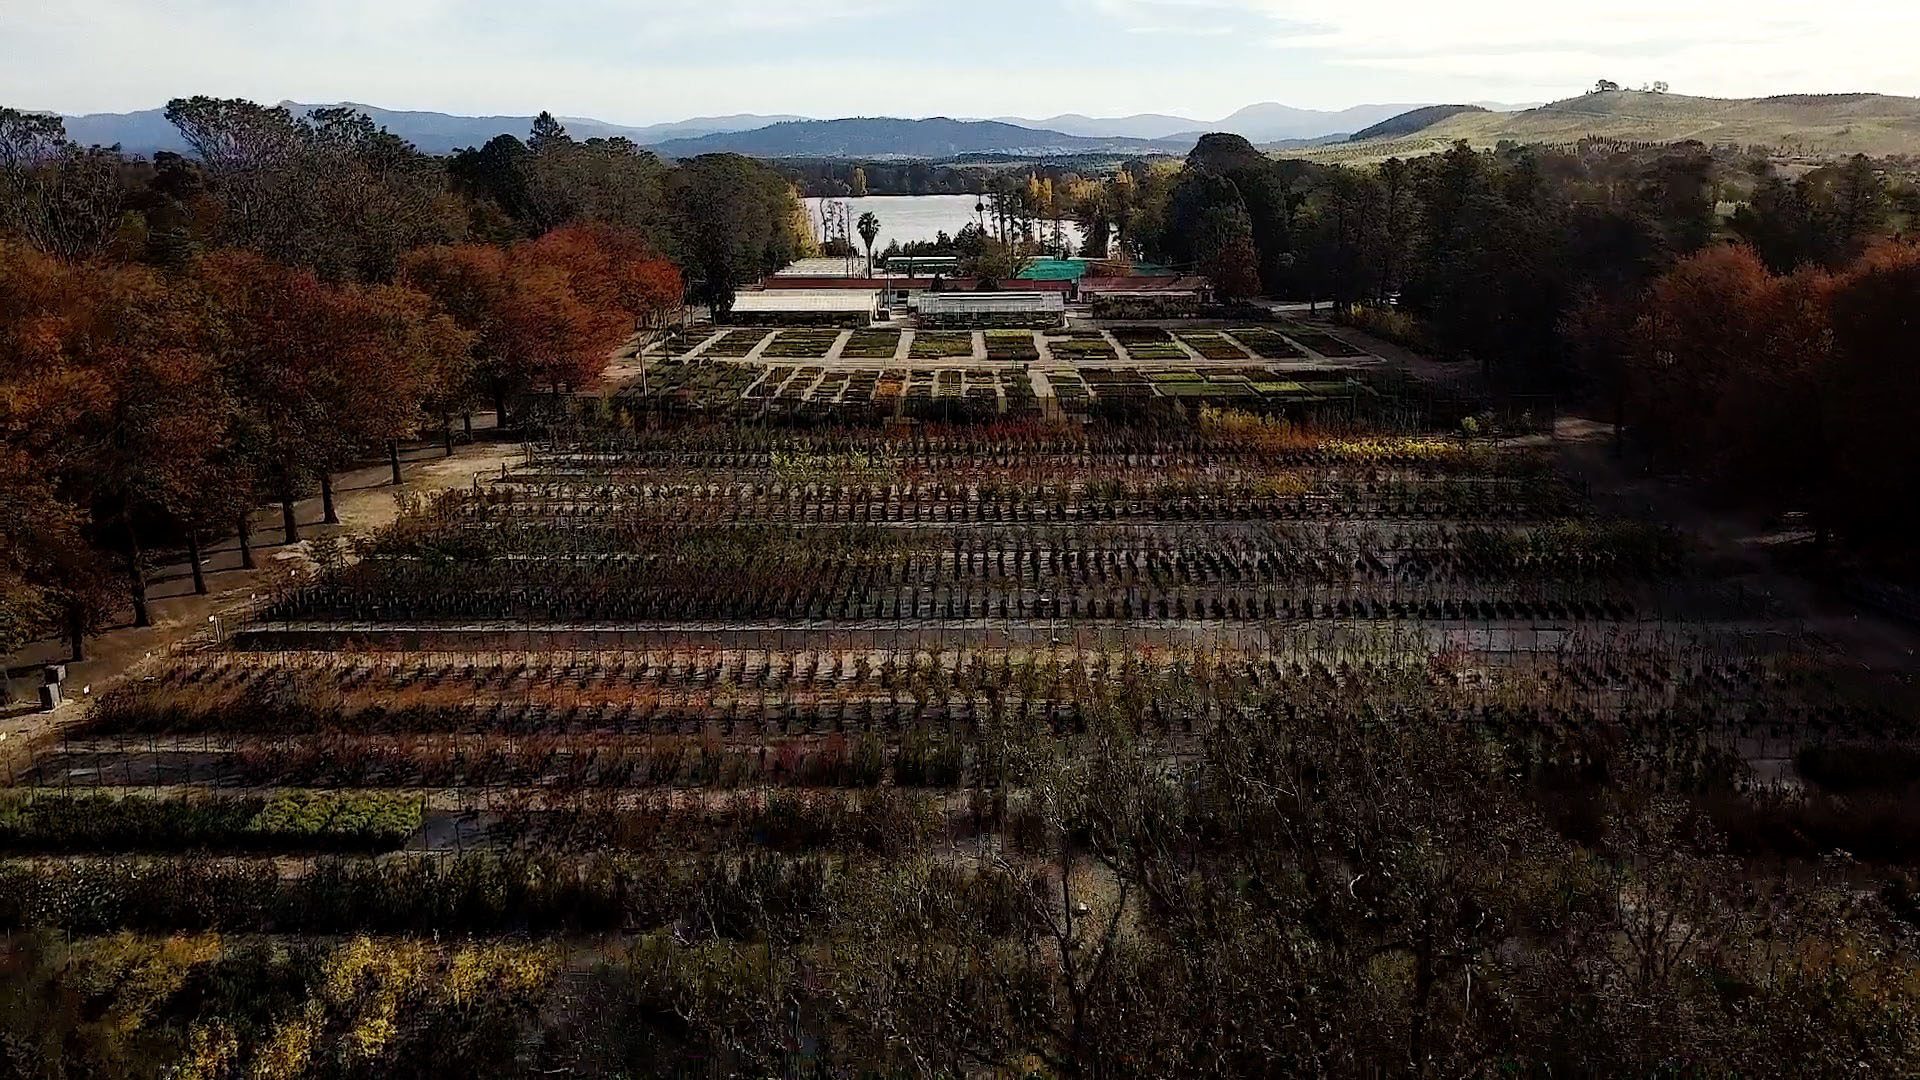 Bird's eye view of the Yarralumla Nursery